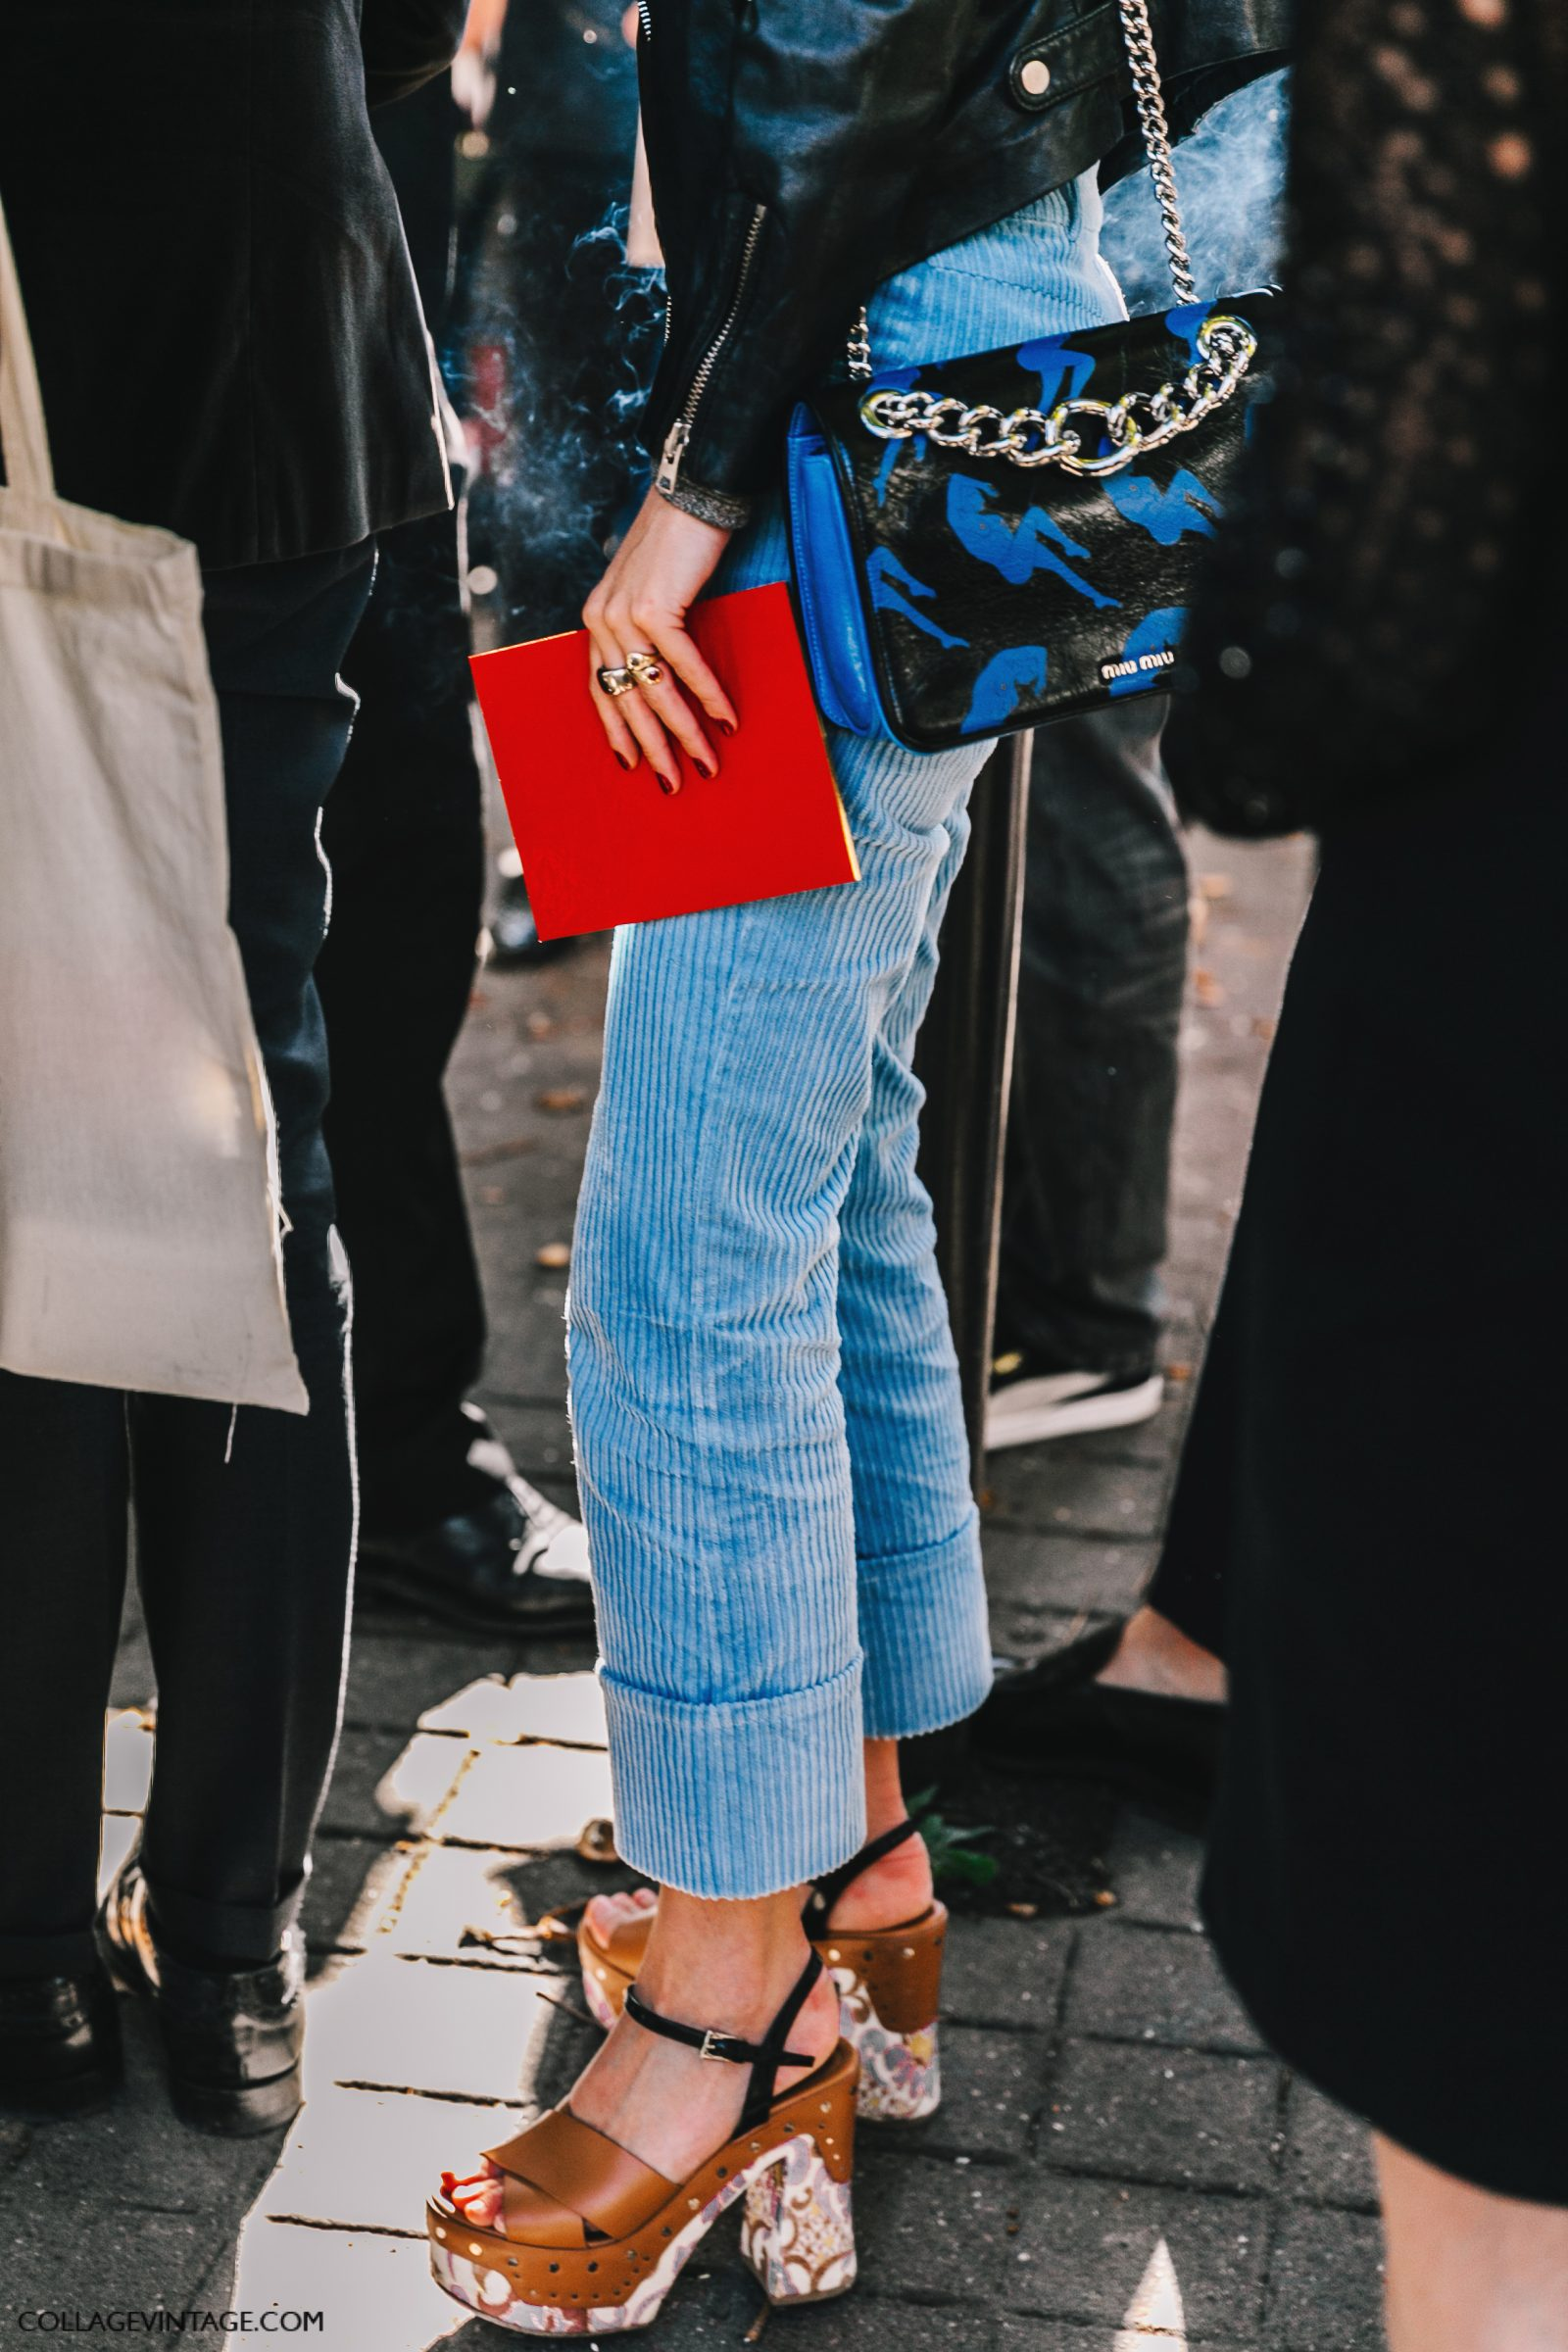 pfw-paris_fashion_week_ss17-street_style-outfit-collage_vintage-louis_vuitton-miu_miu-34